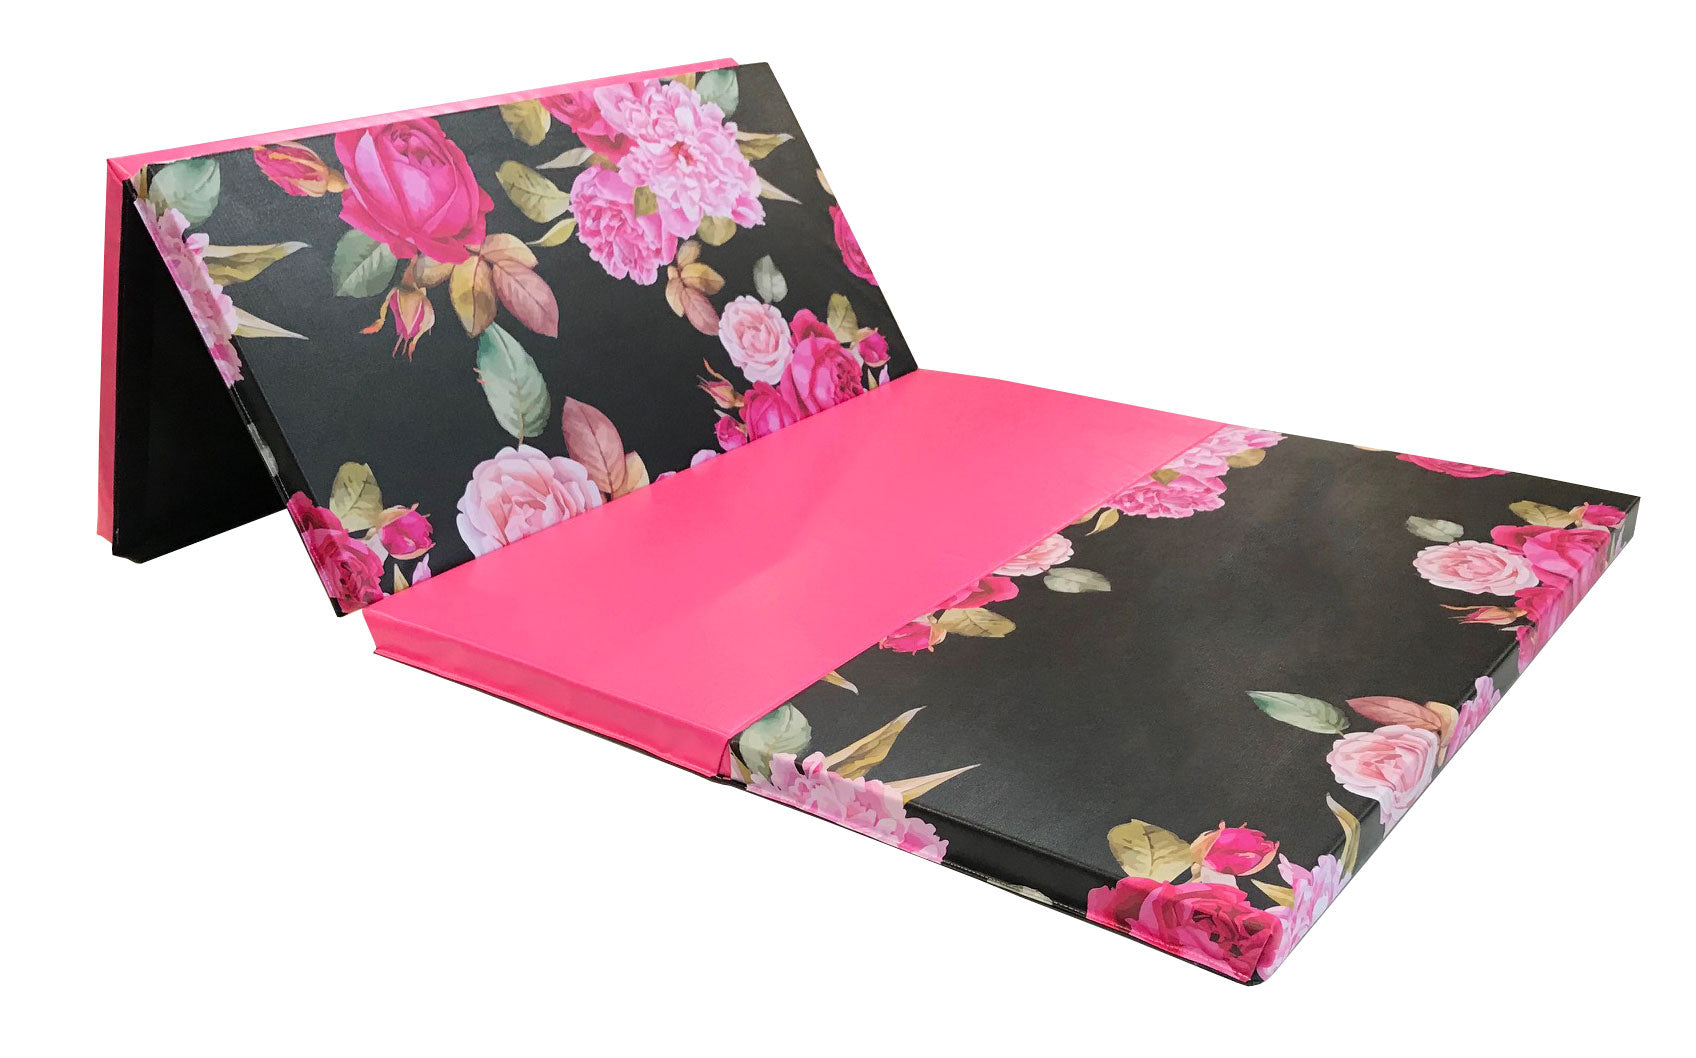 Pink and black floral gymnastic floor mat